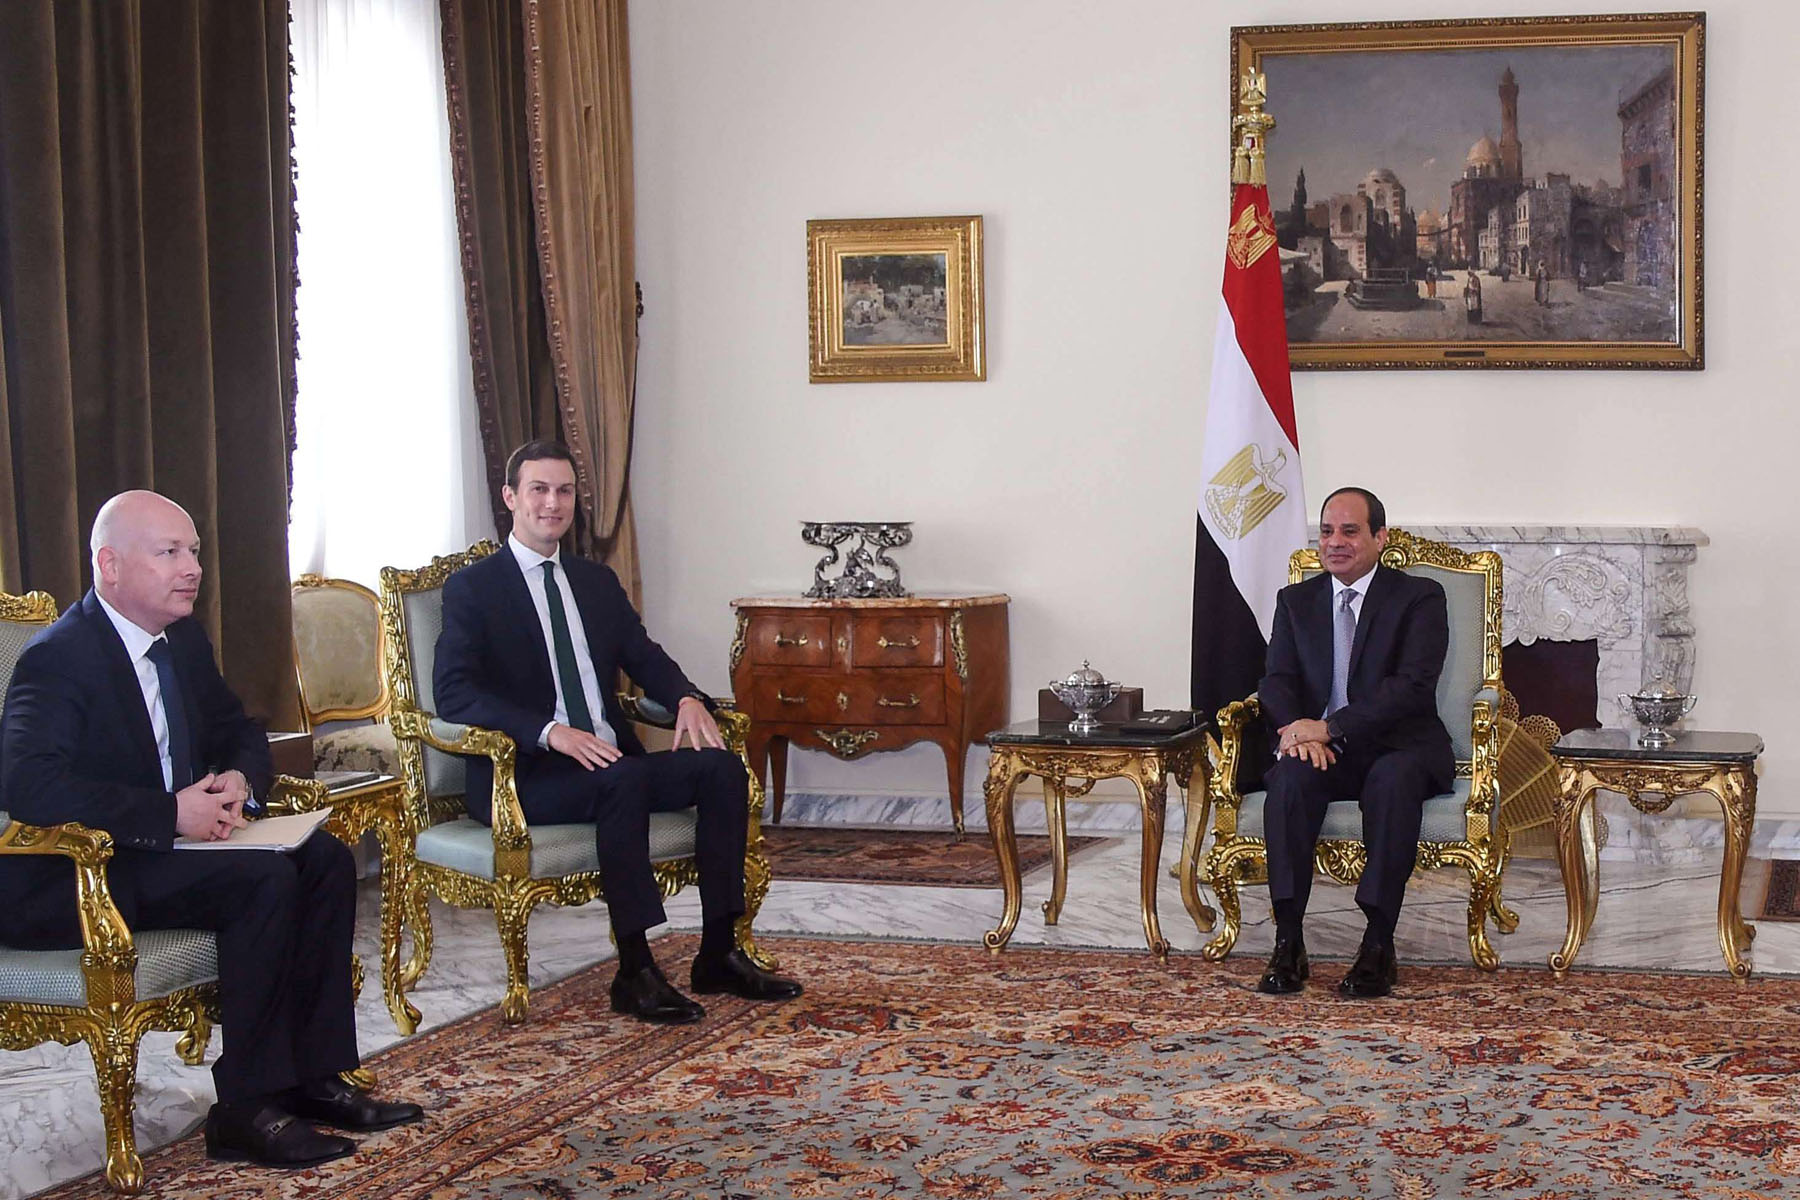 High stakes. Egyptian President Abdel Fattah al-Sisi (R) meets with US President Donald Trump's special envoy Jason Greenblatt (L) and adviser Jared Kushner (2nd-L) in Cairo. (Egyptian Presidency)